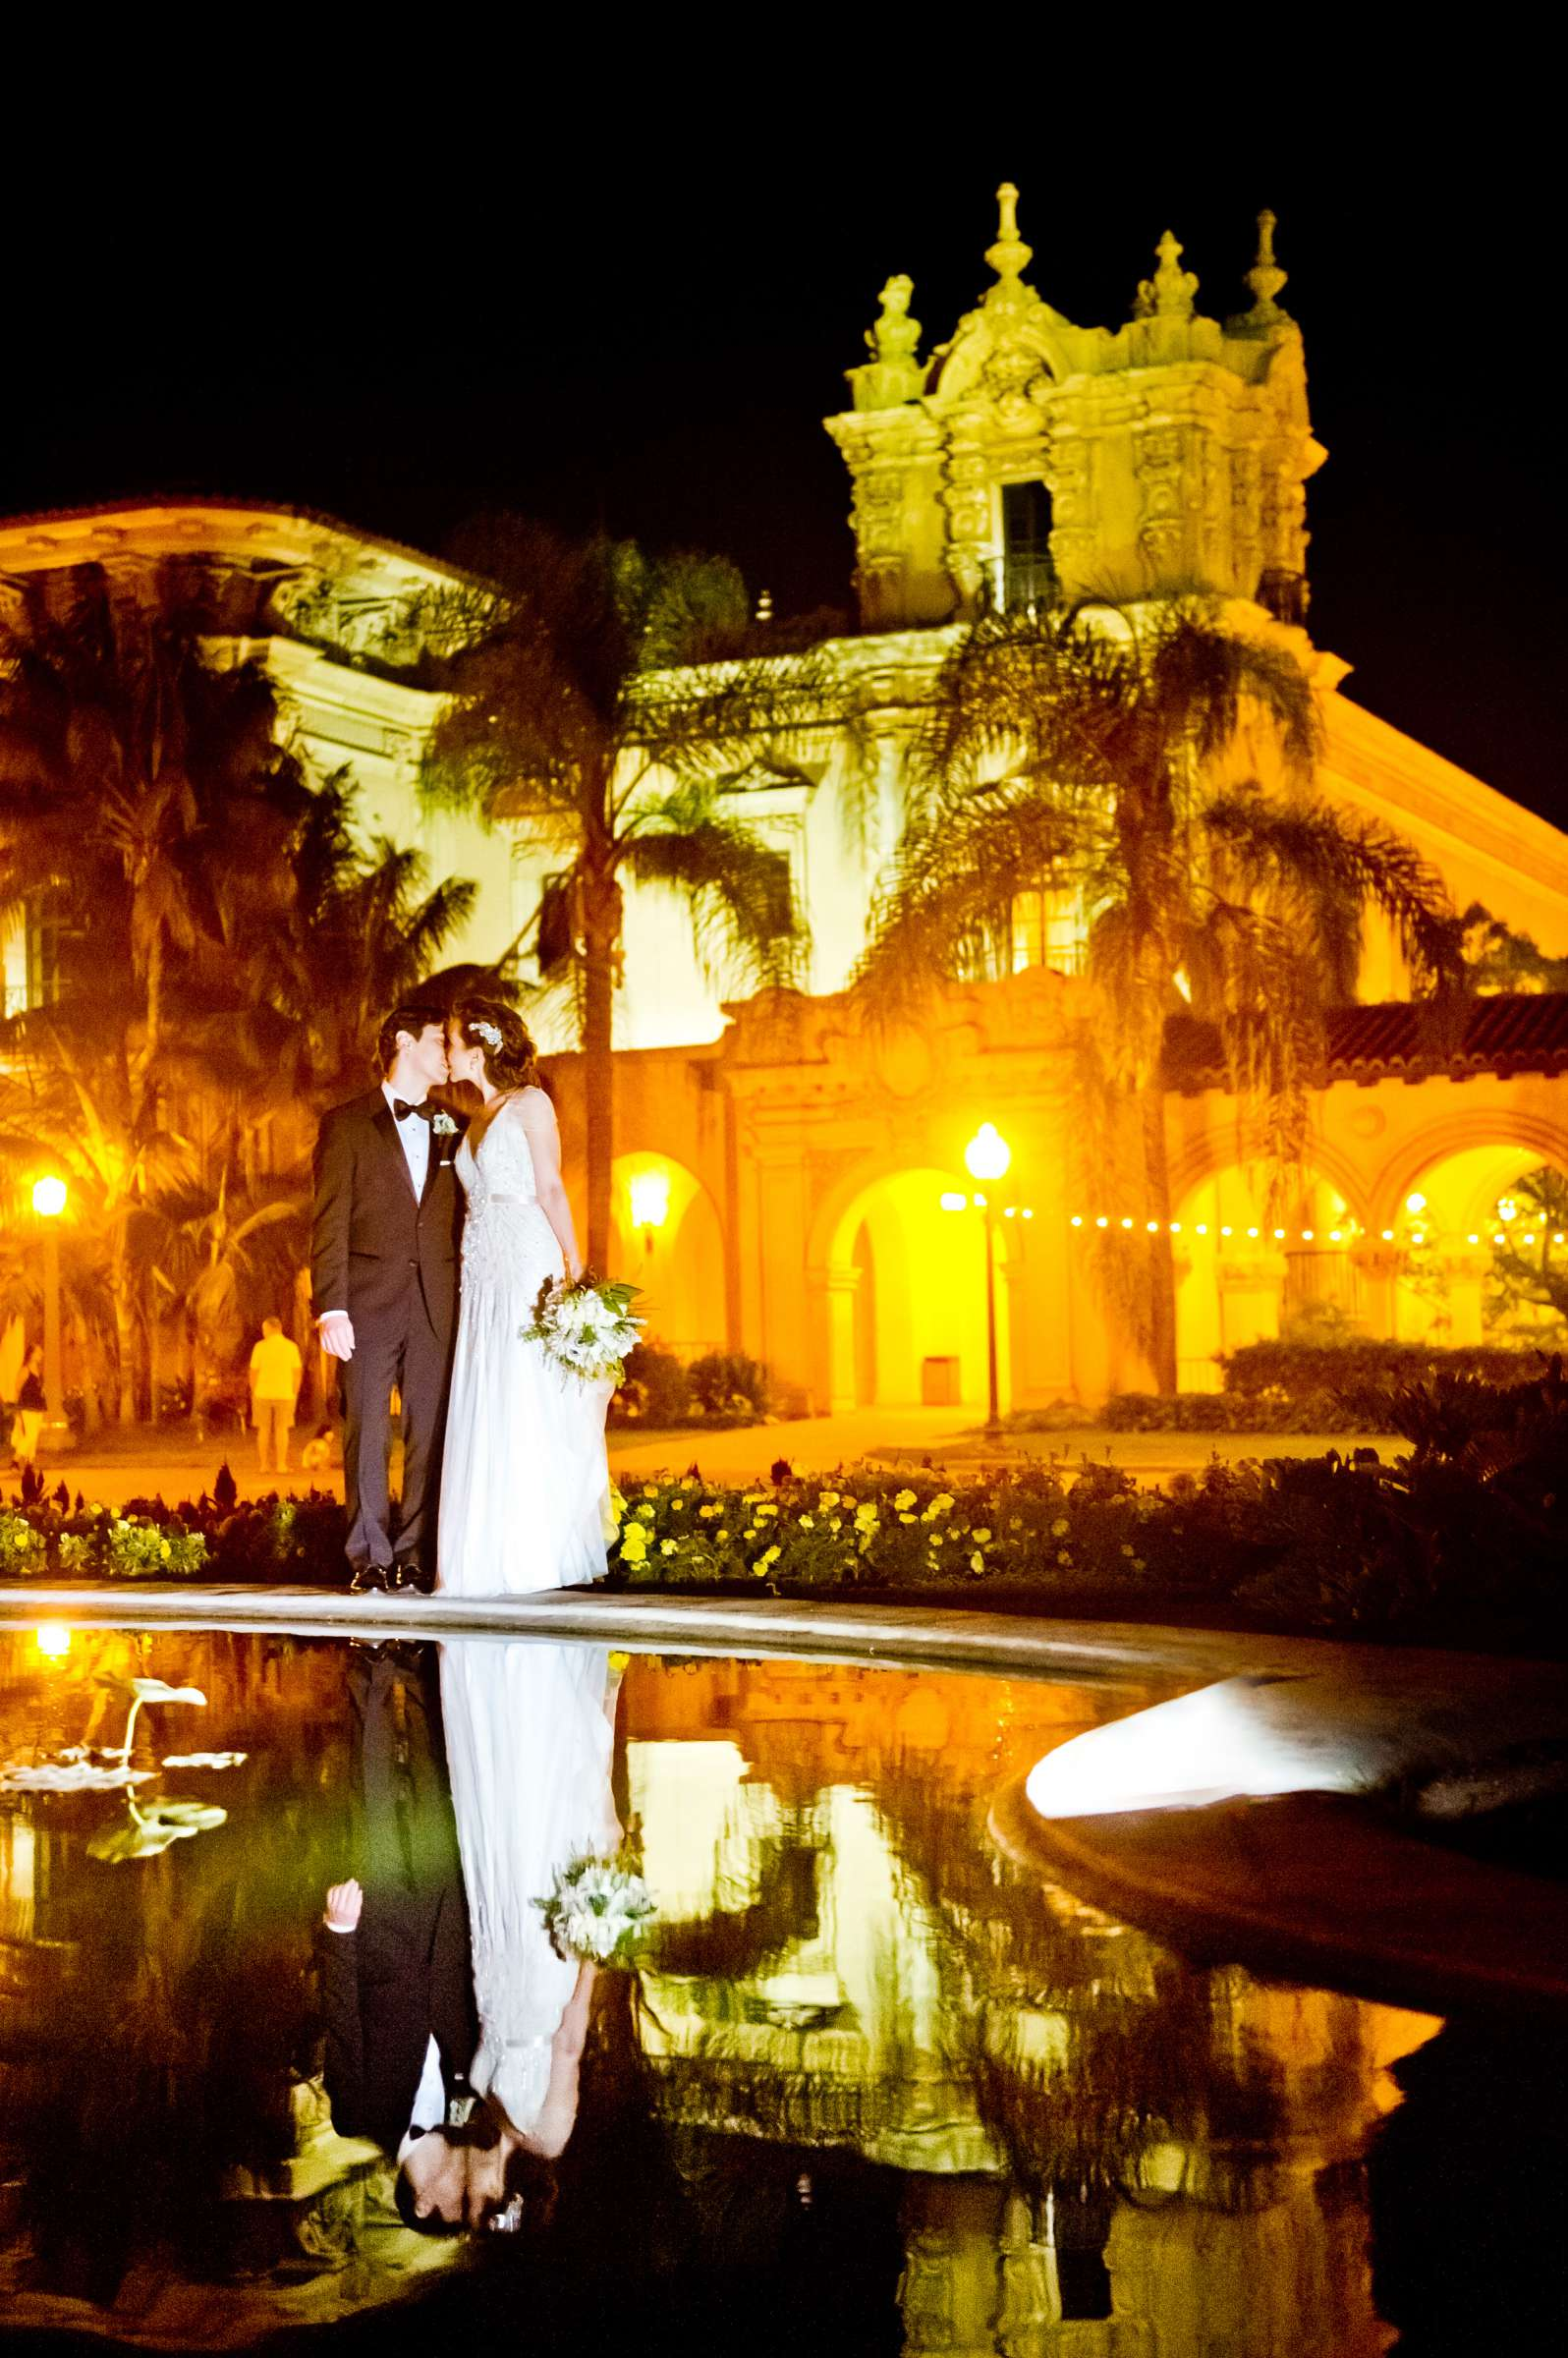 The Prado Wedding coordinated by Francine Ribeau Events, Rosalyn and Adam Wedding Photo #1 by True Photography